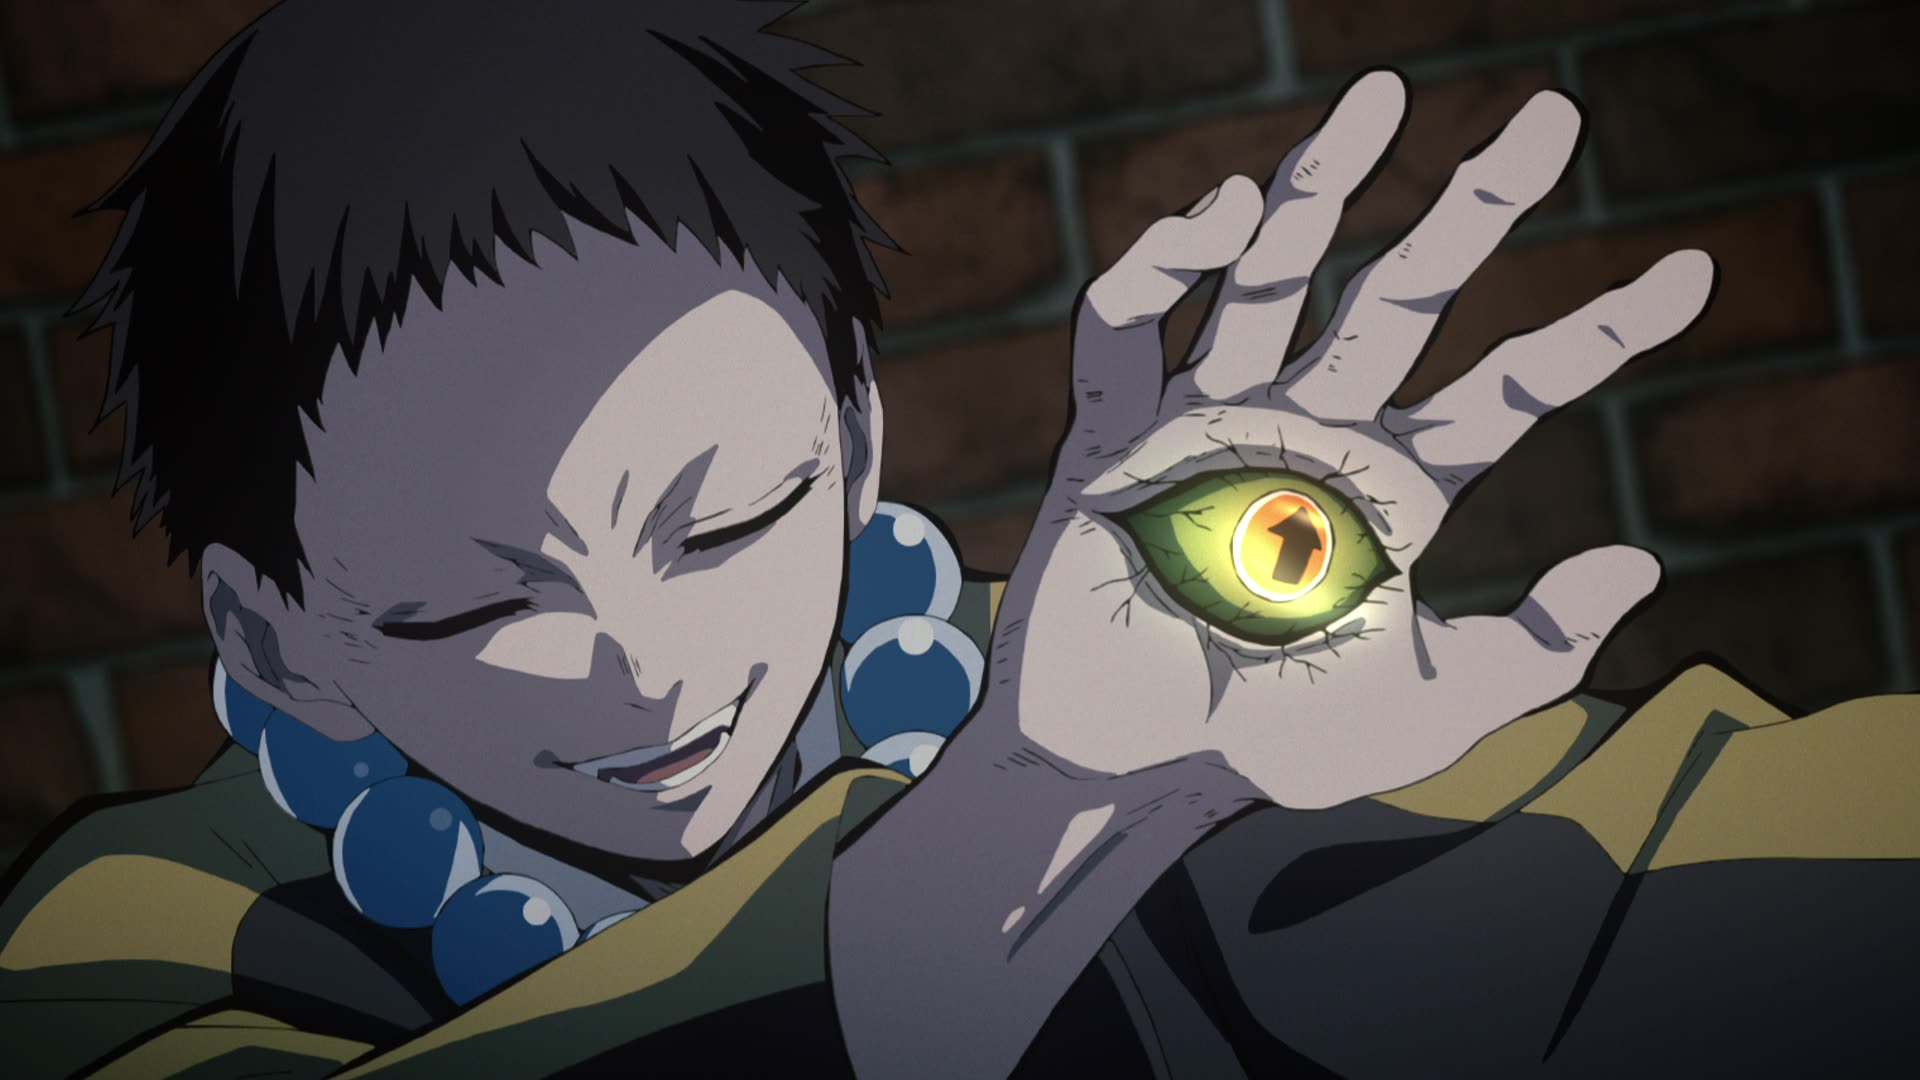 Demon Slayer: Kimetsu no Yaiba Episode 9, Temari Demon and